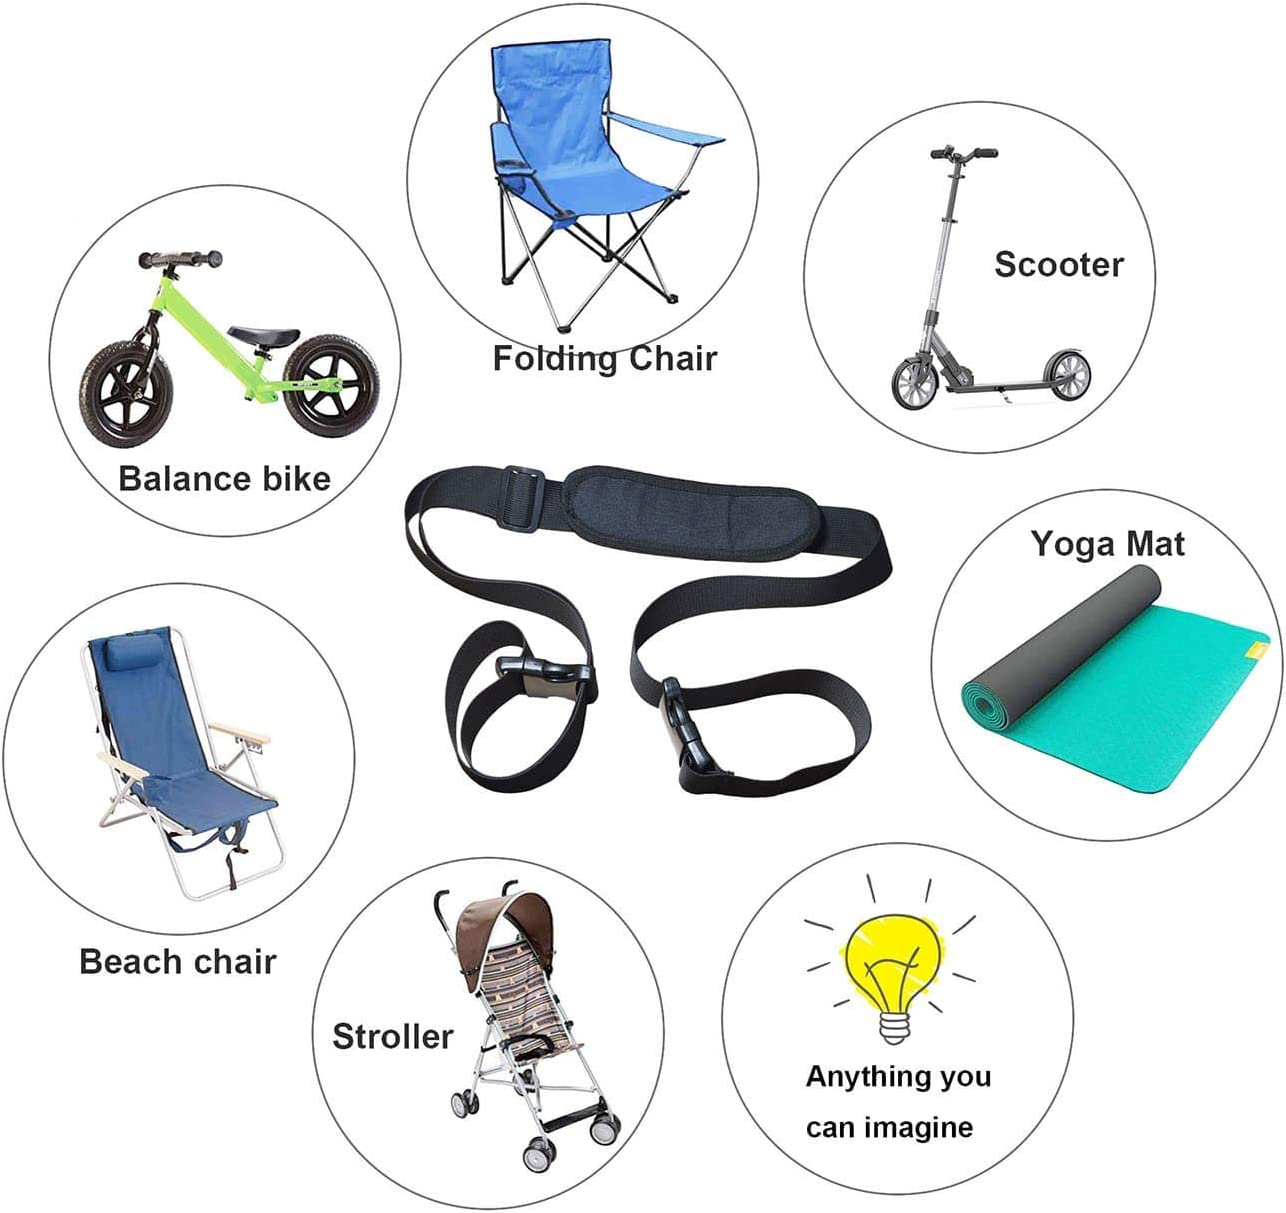 WINGKIND Adjustable Beach Chair Carry Strap Folding Chair Shoulder Strap for Beaches Camping Backpacking Picnics and Other Items